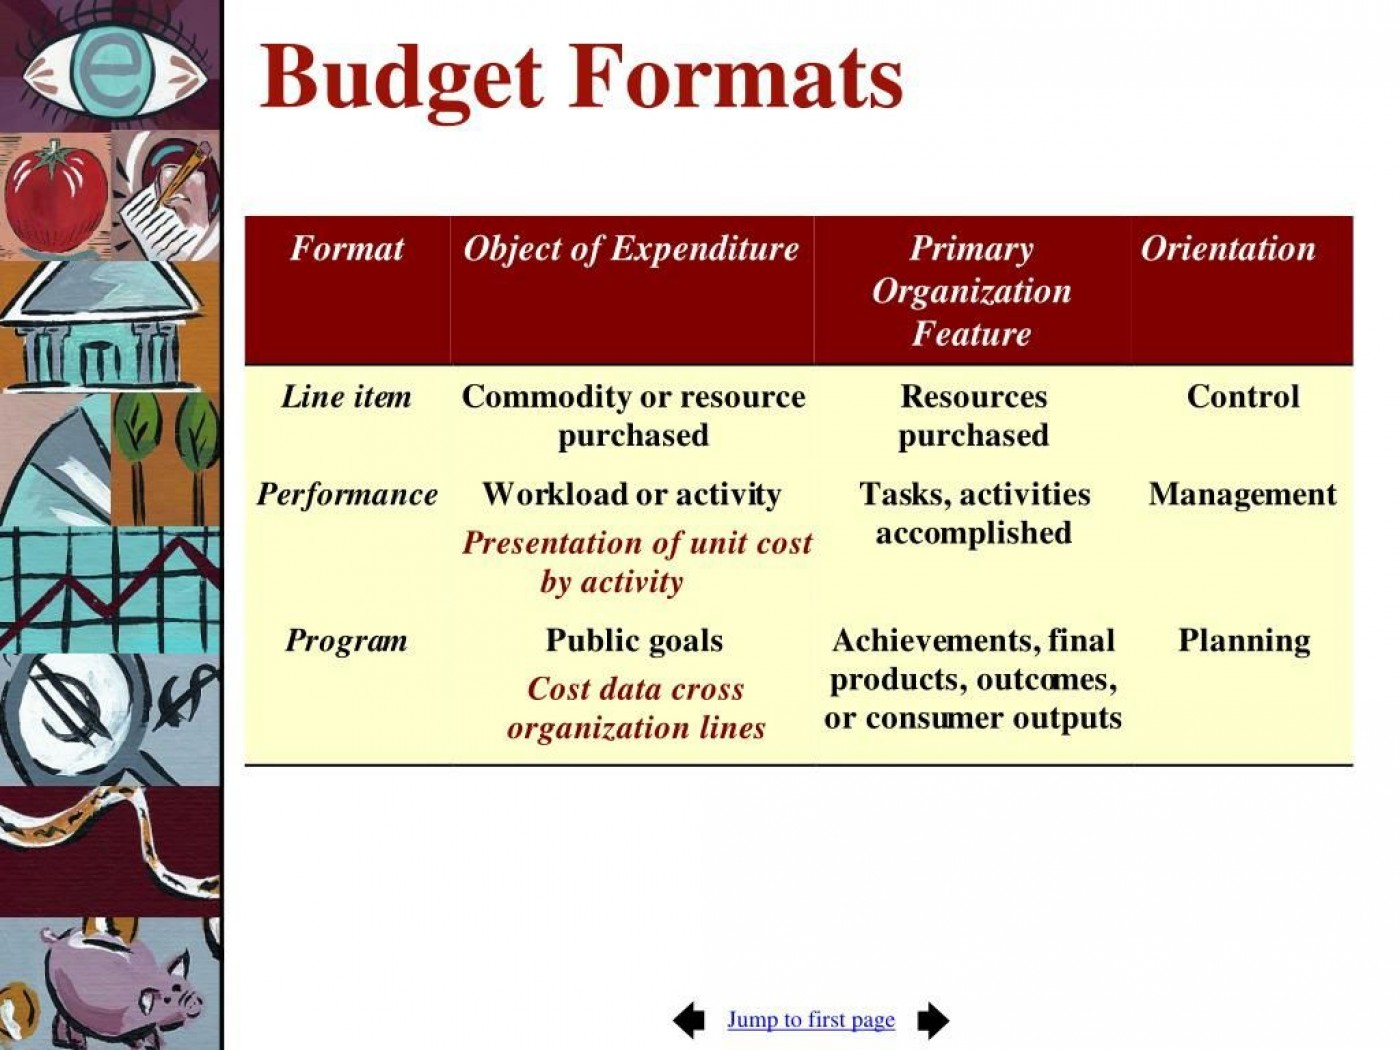 002 Surprising Line Item Budget Format Idea  Example Of Template Film Meaning With1400